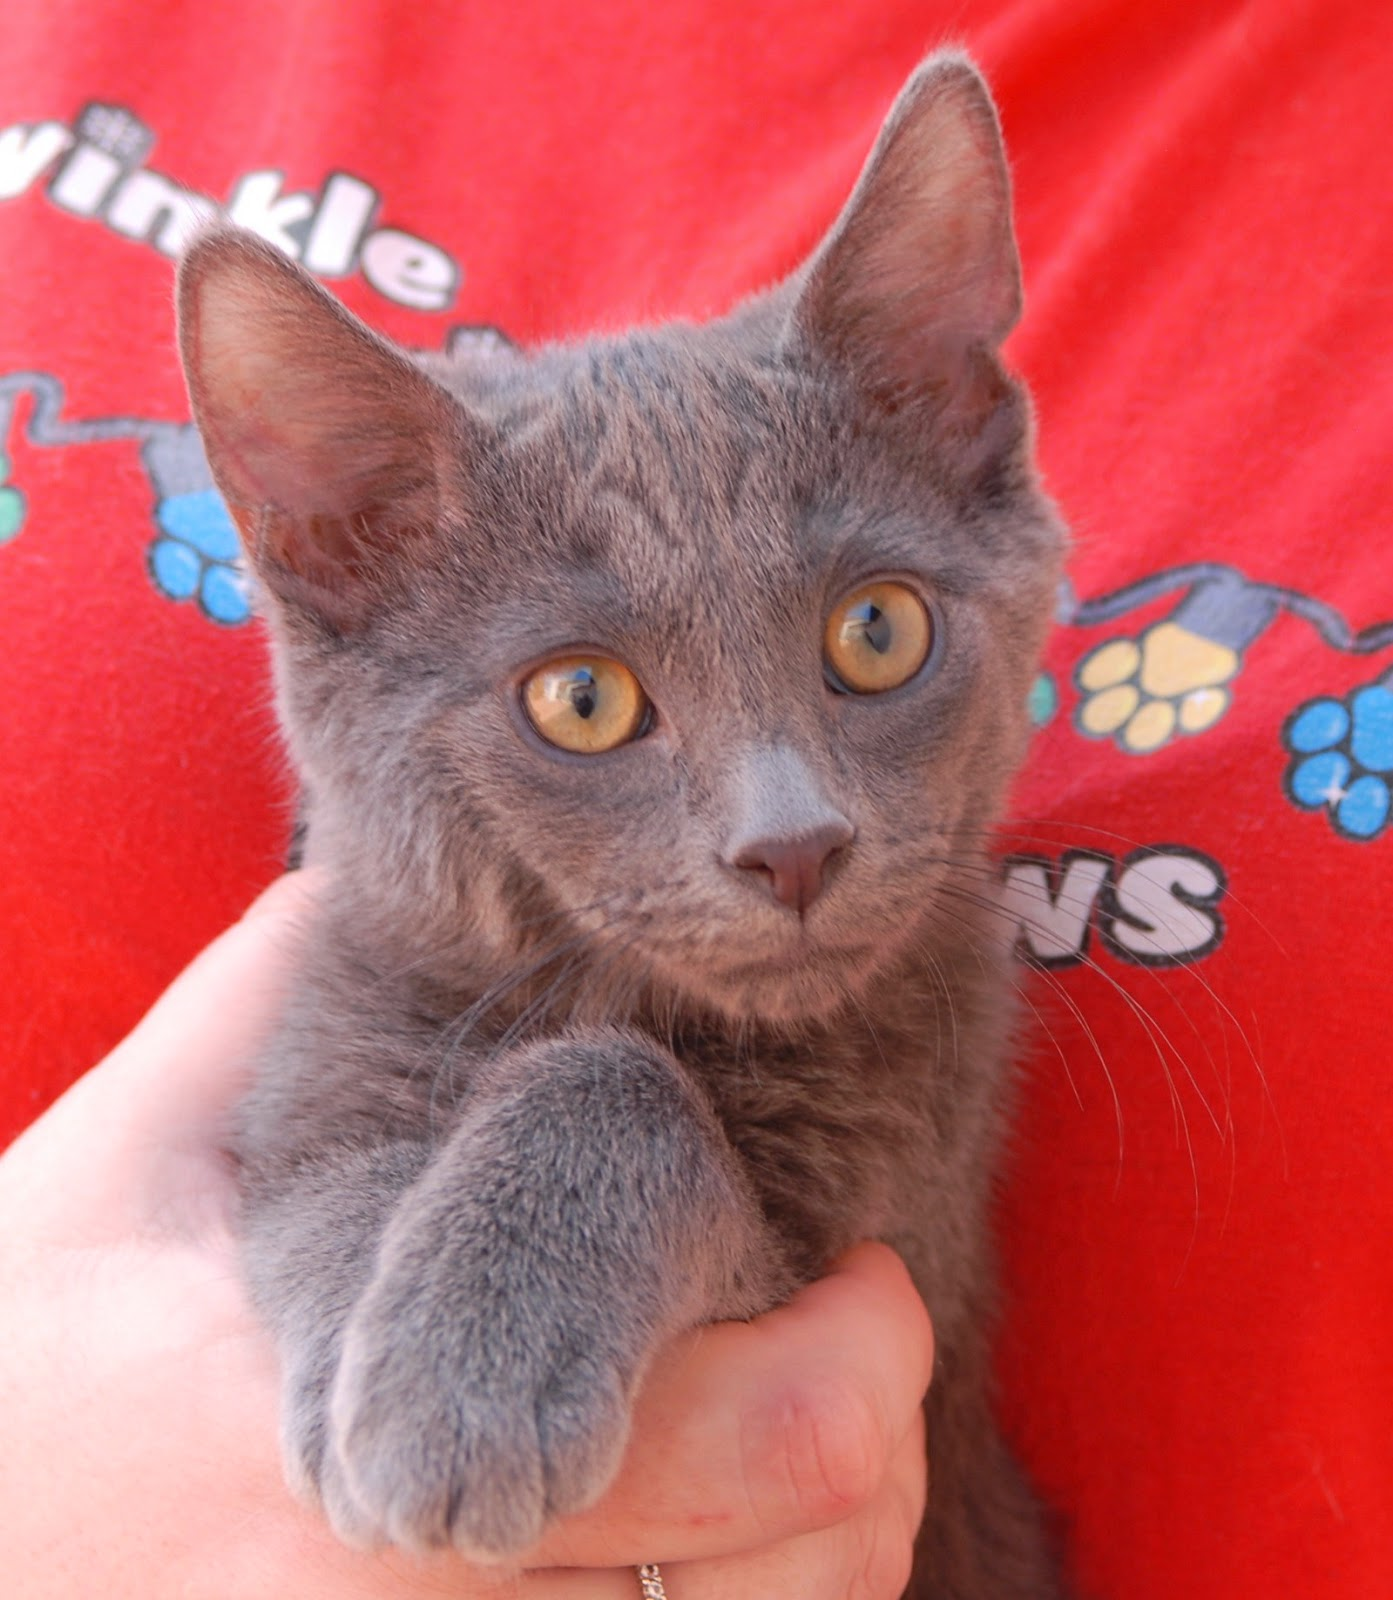 Nevada SPCA Animal Rescue Sweetheart kittens ready for adoption